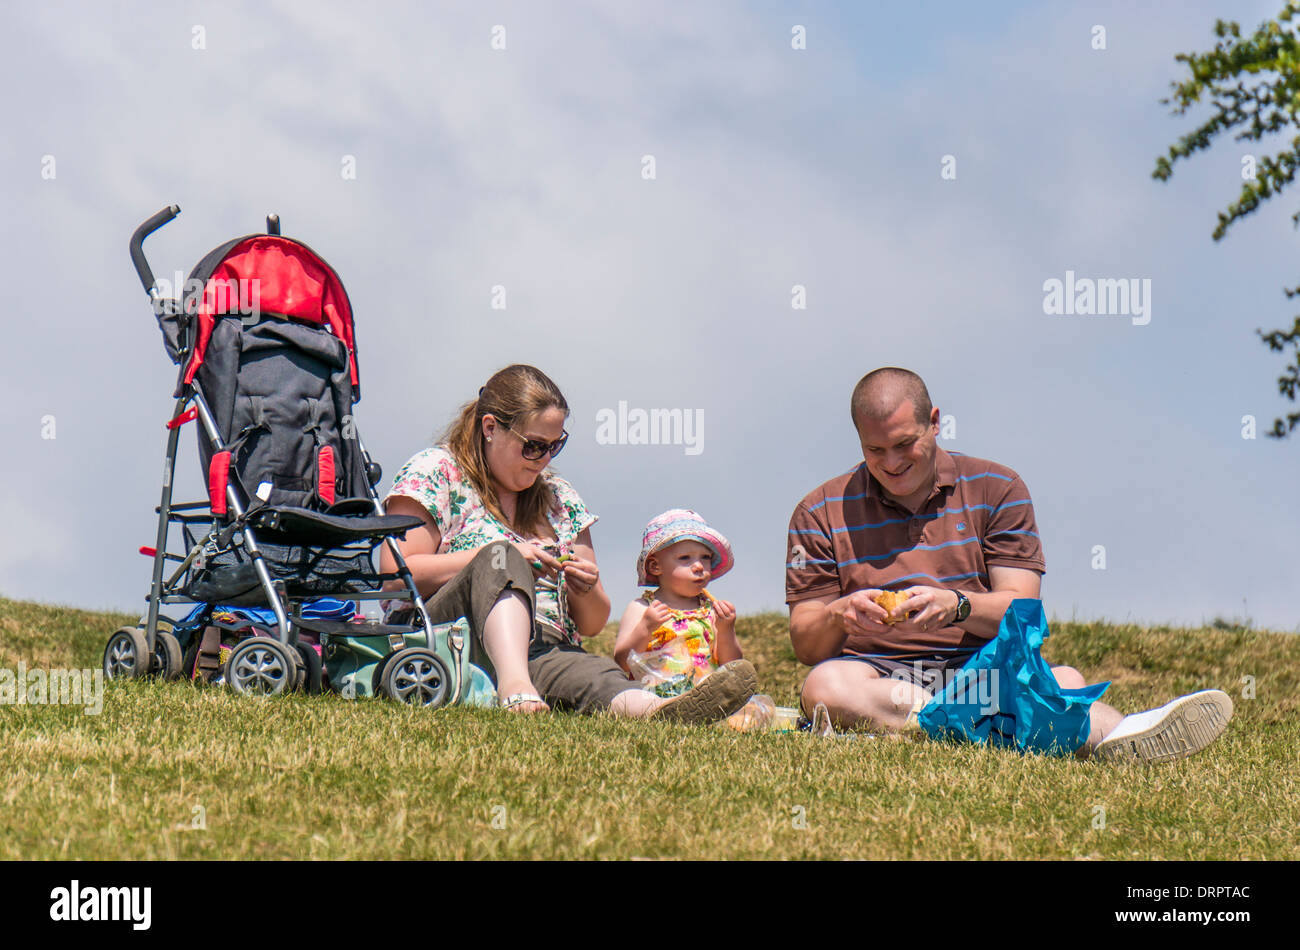 A couple and their baby spending some quality time together, having a picnic in the warm summer sunshine, on Box - Stock Image